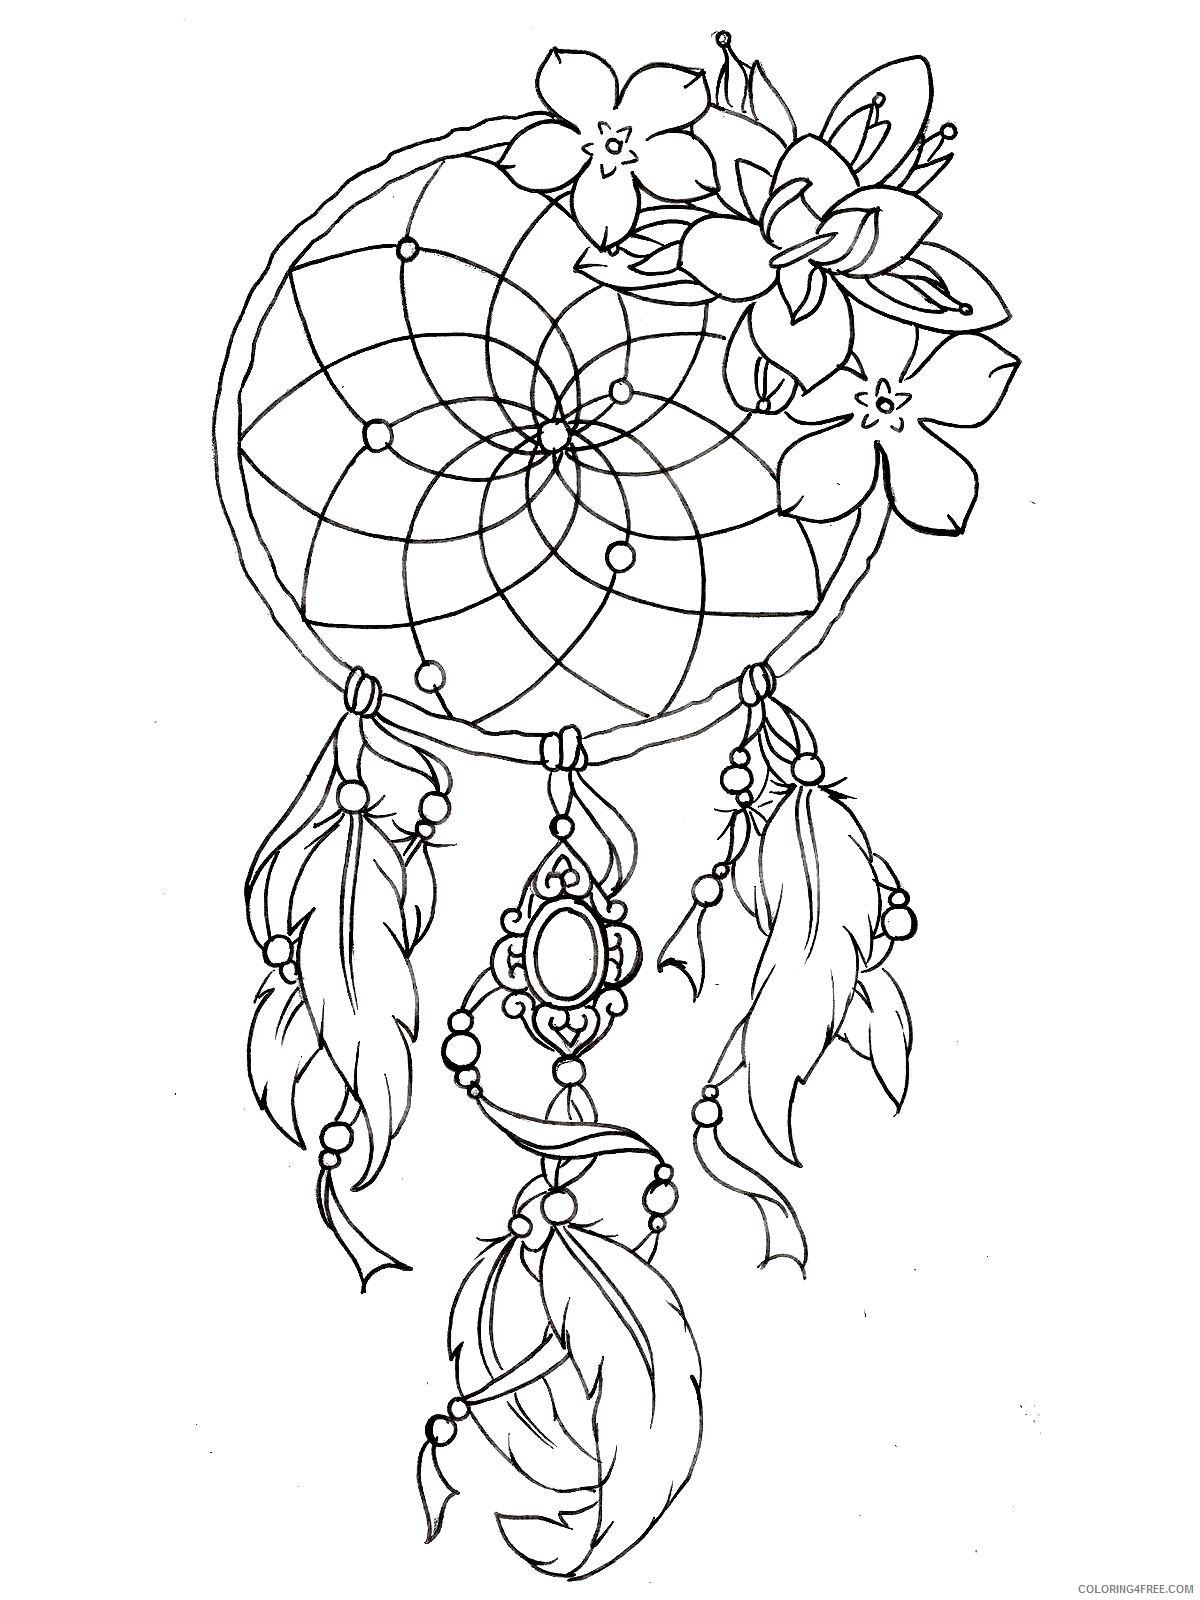 tattoo coloring pages for girls Coloring4free